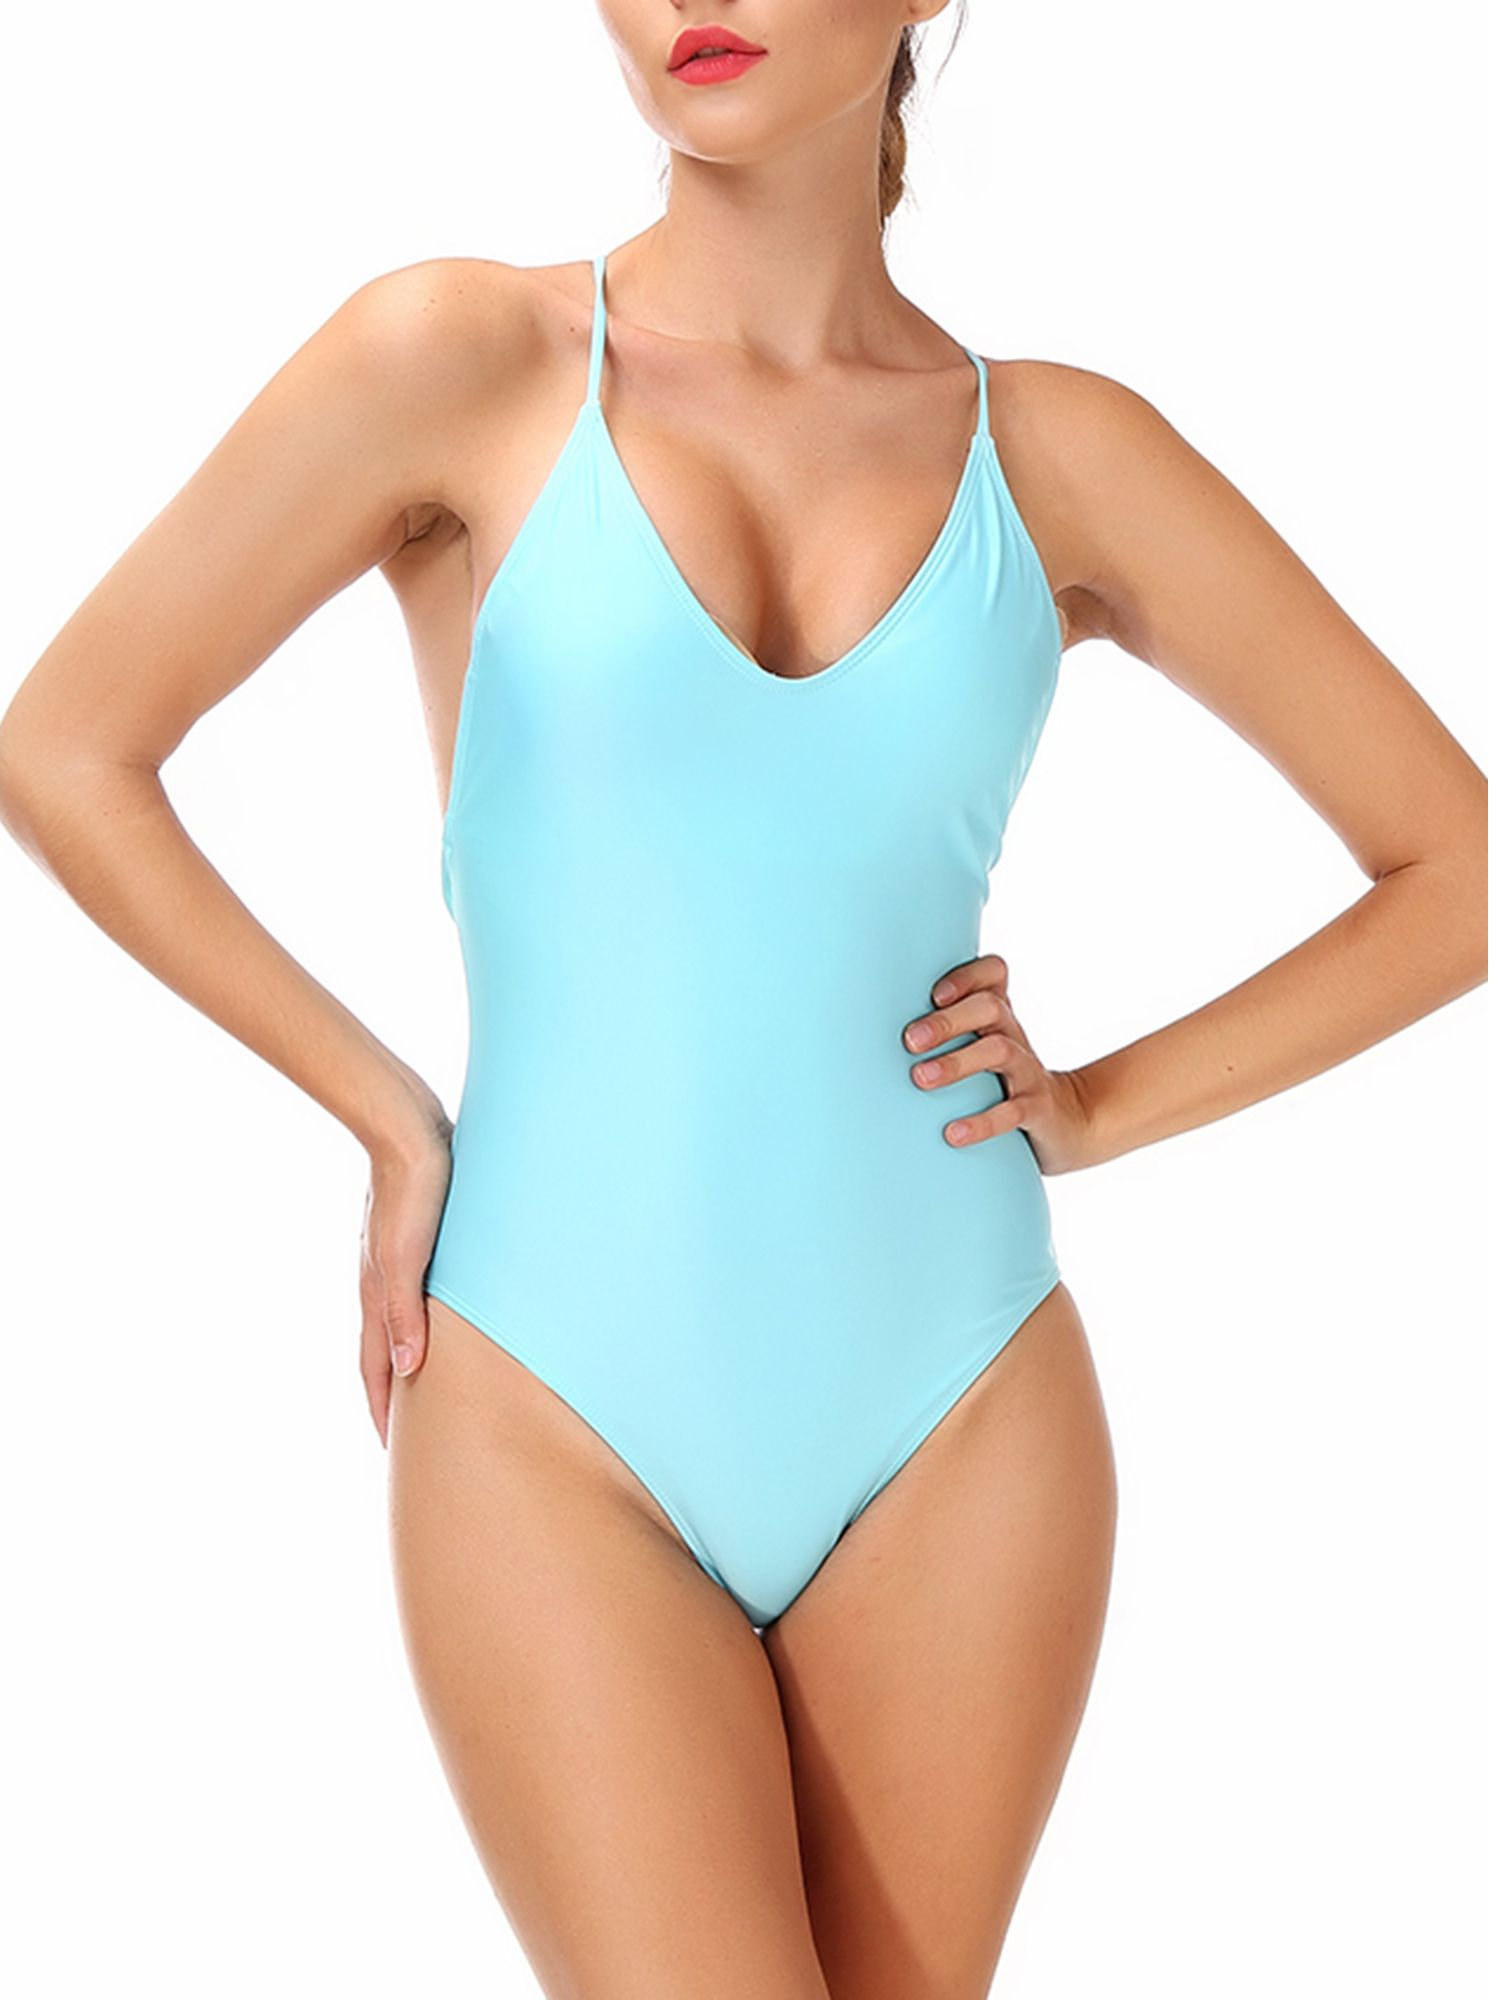 5789ac6f1c0e6 SAYFUT Womens Sexy One Piece Swimsuits Halter V-Neck Push Up Padded  Slimming Monokini Swimwear Soild Color Bathing Suits White/Yellow/Dark  Blue/Lake ...